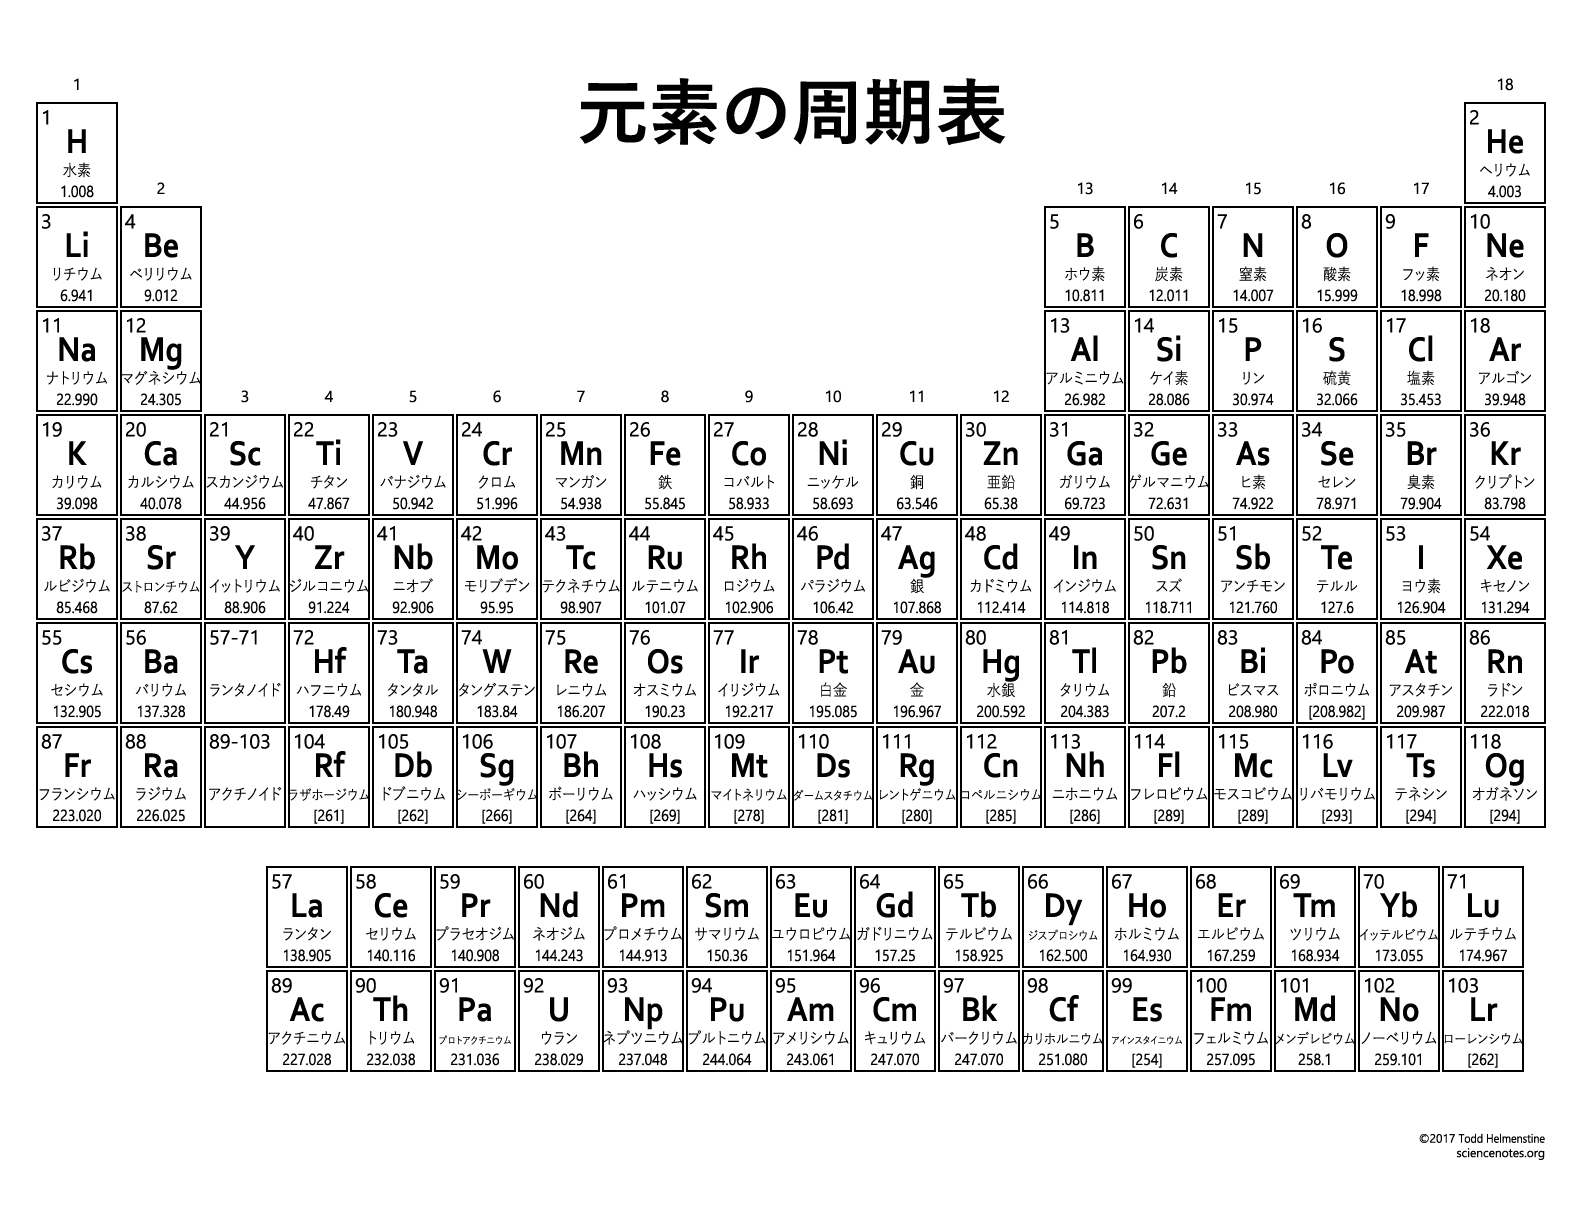 Genso no shuuki hyou japanese periodic table of the elements genso no shuuki hyou this periodic table urtaz Choice Image